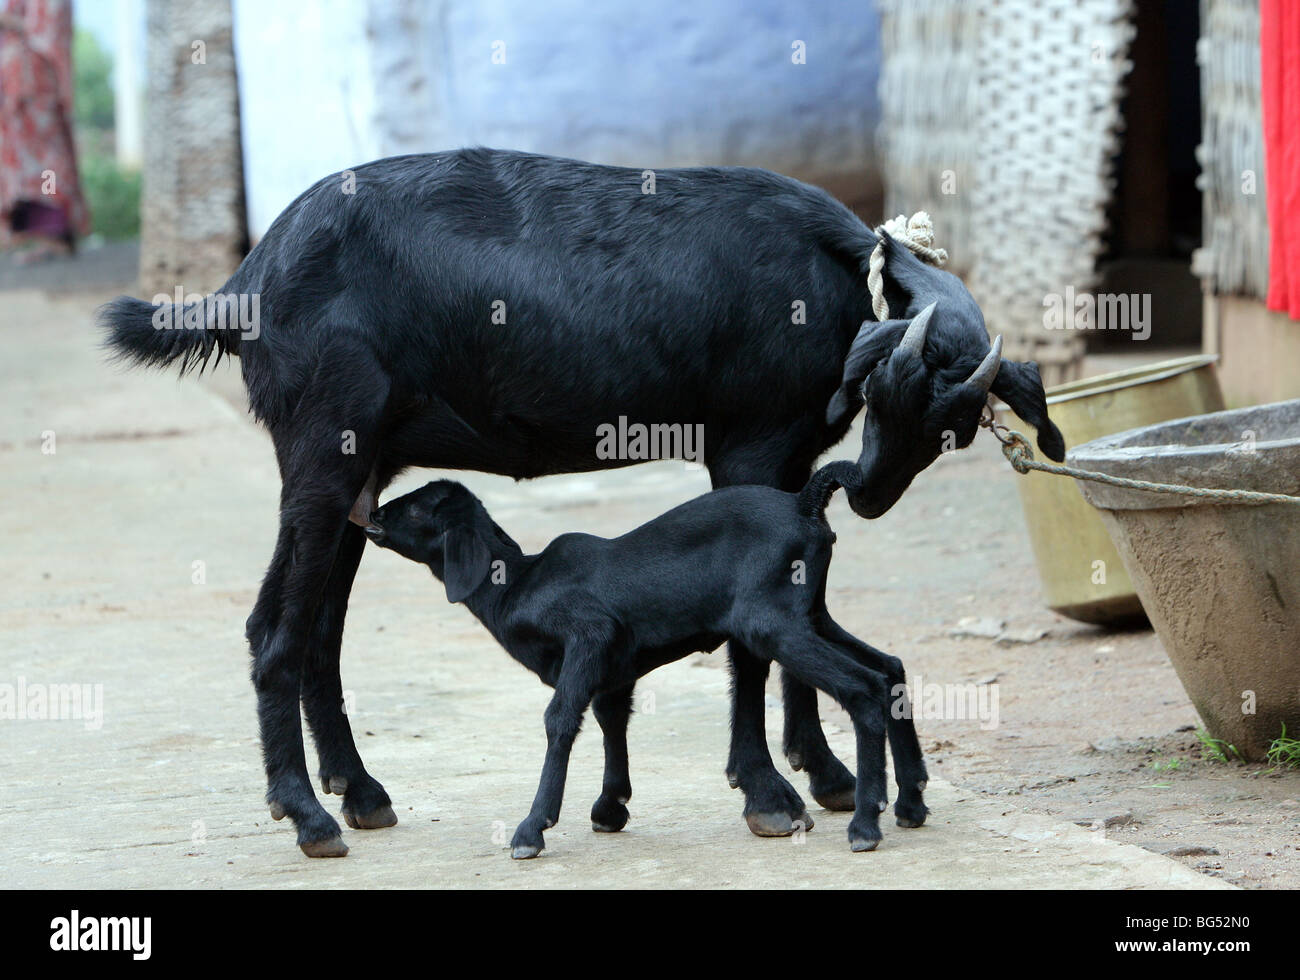 Black nanny goat feeds her young kid - Stock Image